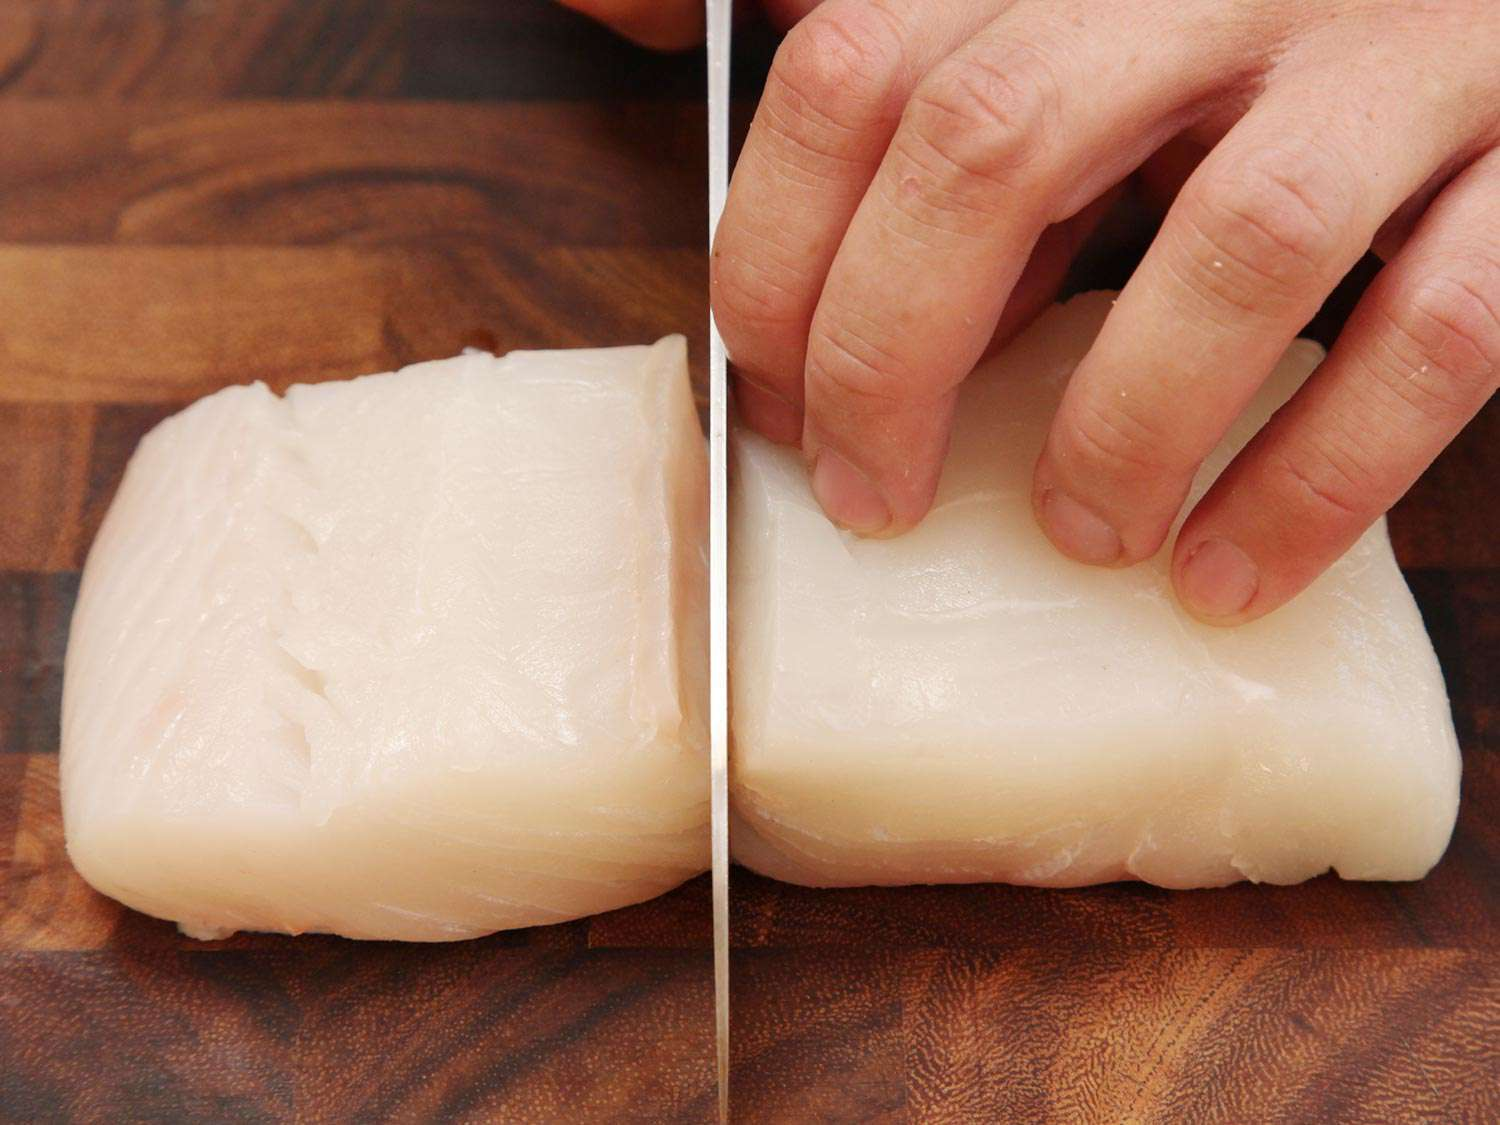 A hand holding an uncooked fish fillet steady while cutting down the middle with a knife into a single portion.